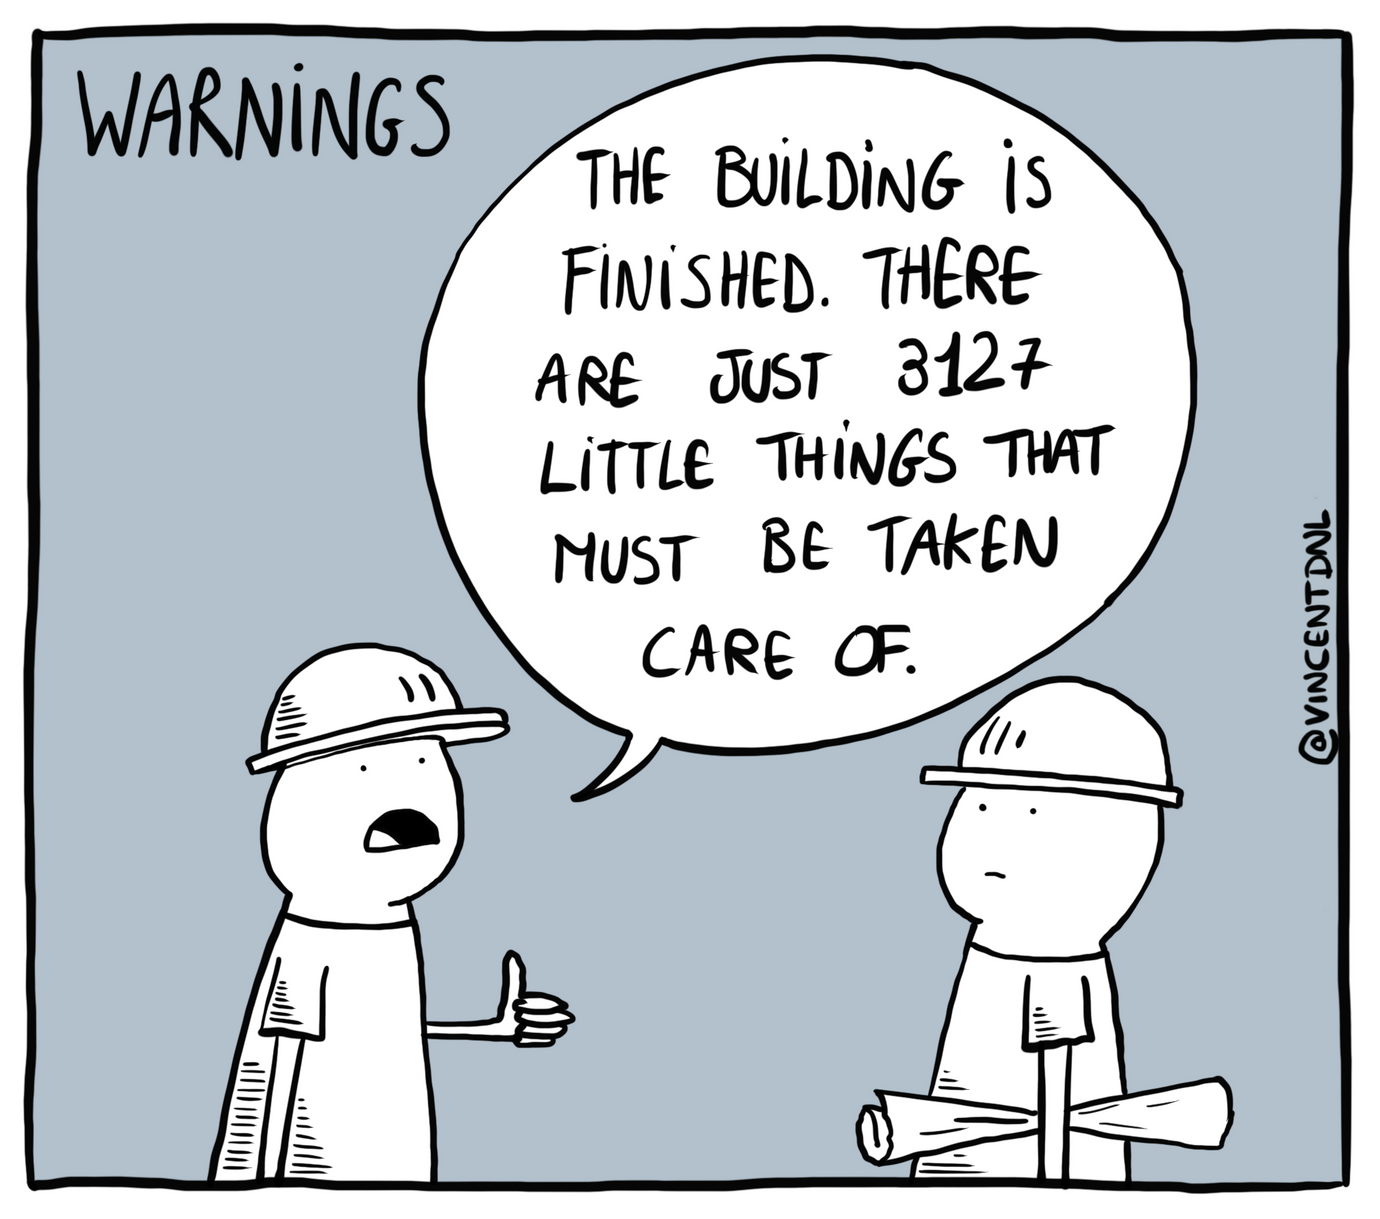 drawing - text: Warnings - The building is finished. There are just 3127 little things that must be taken care of.